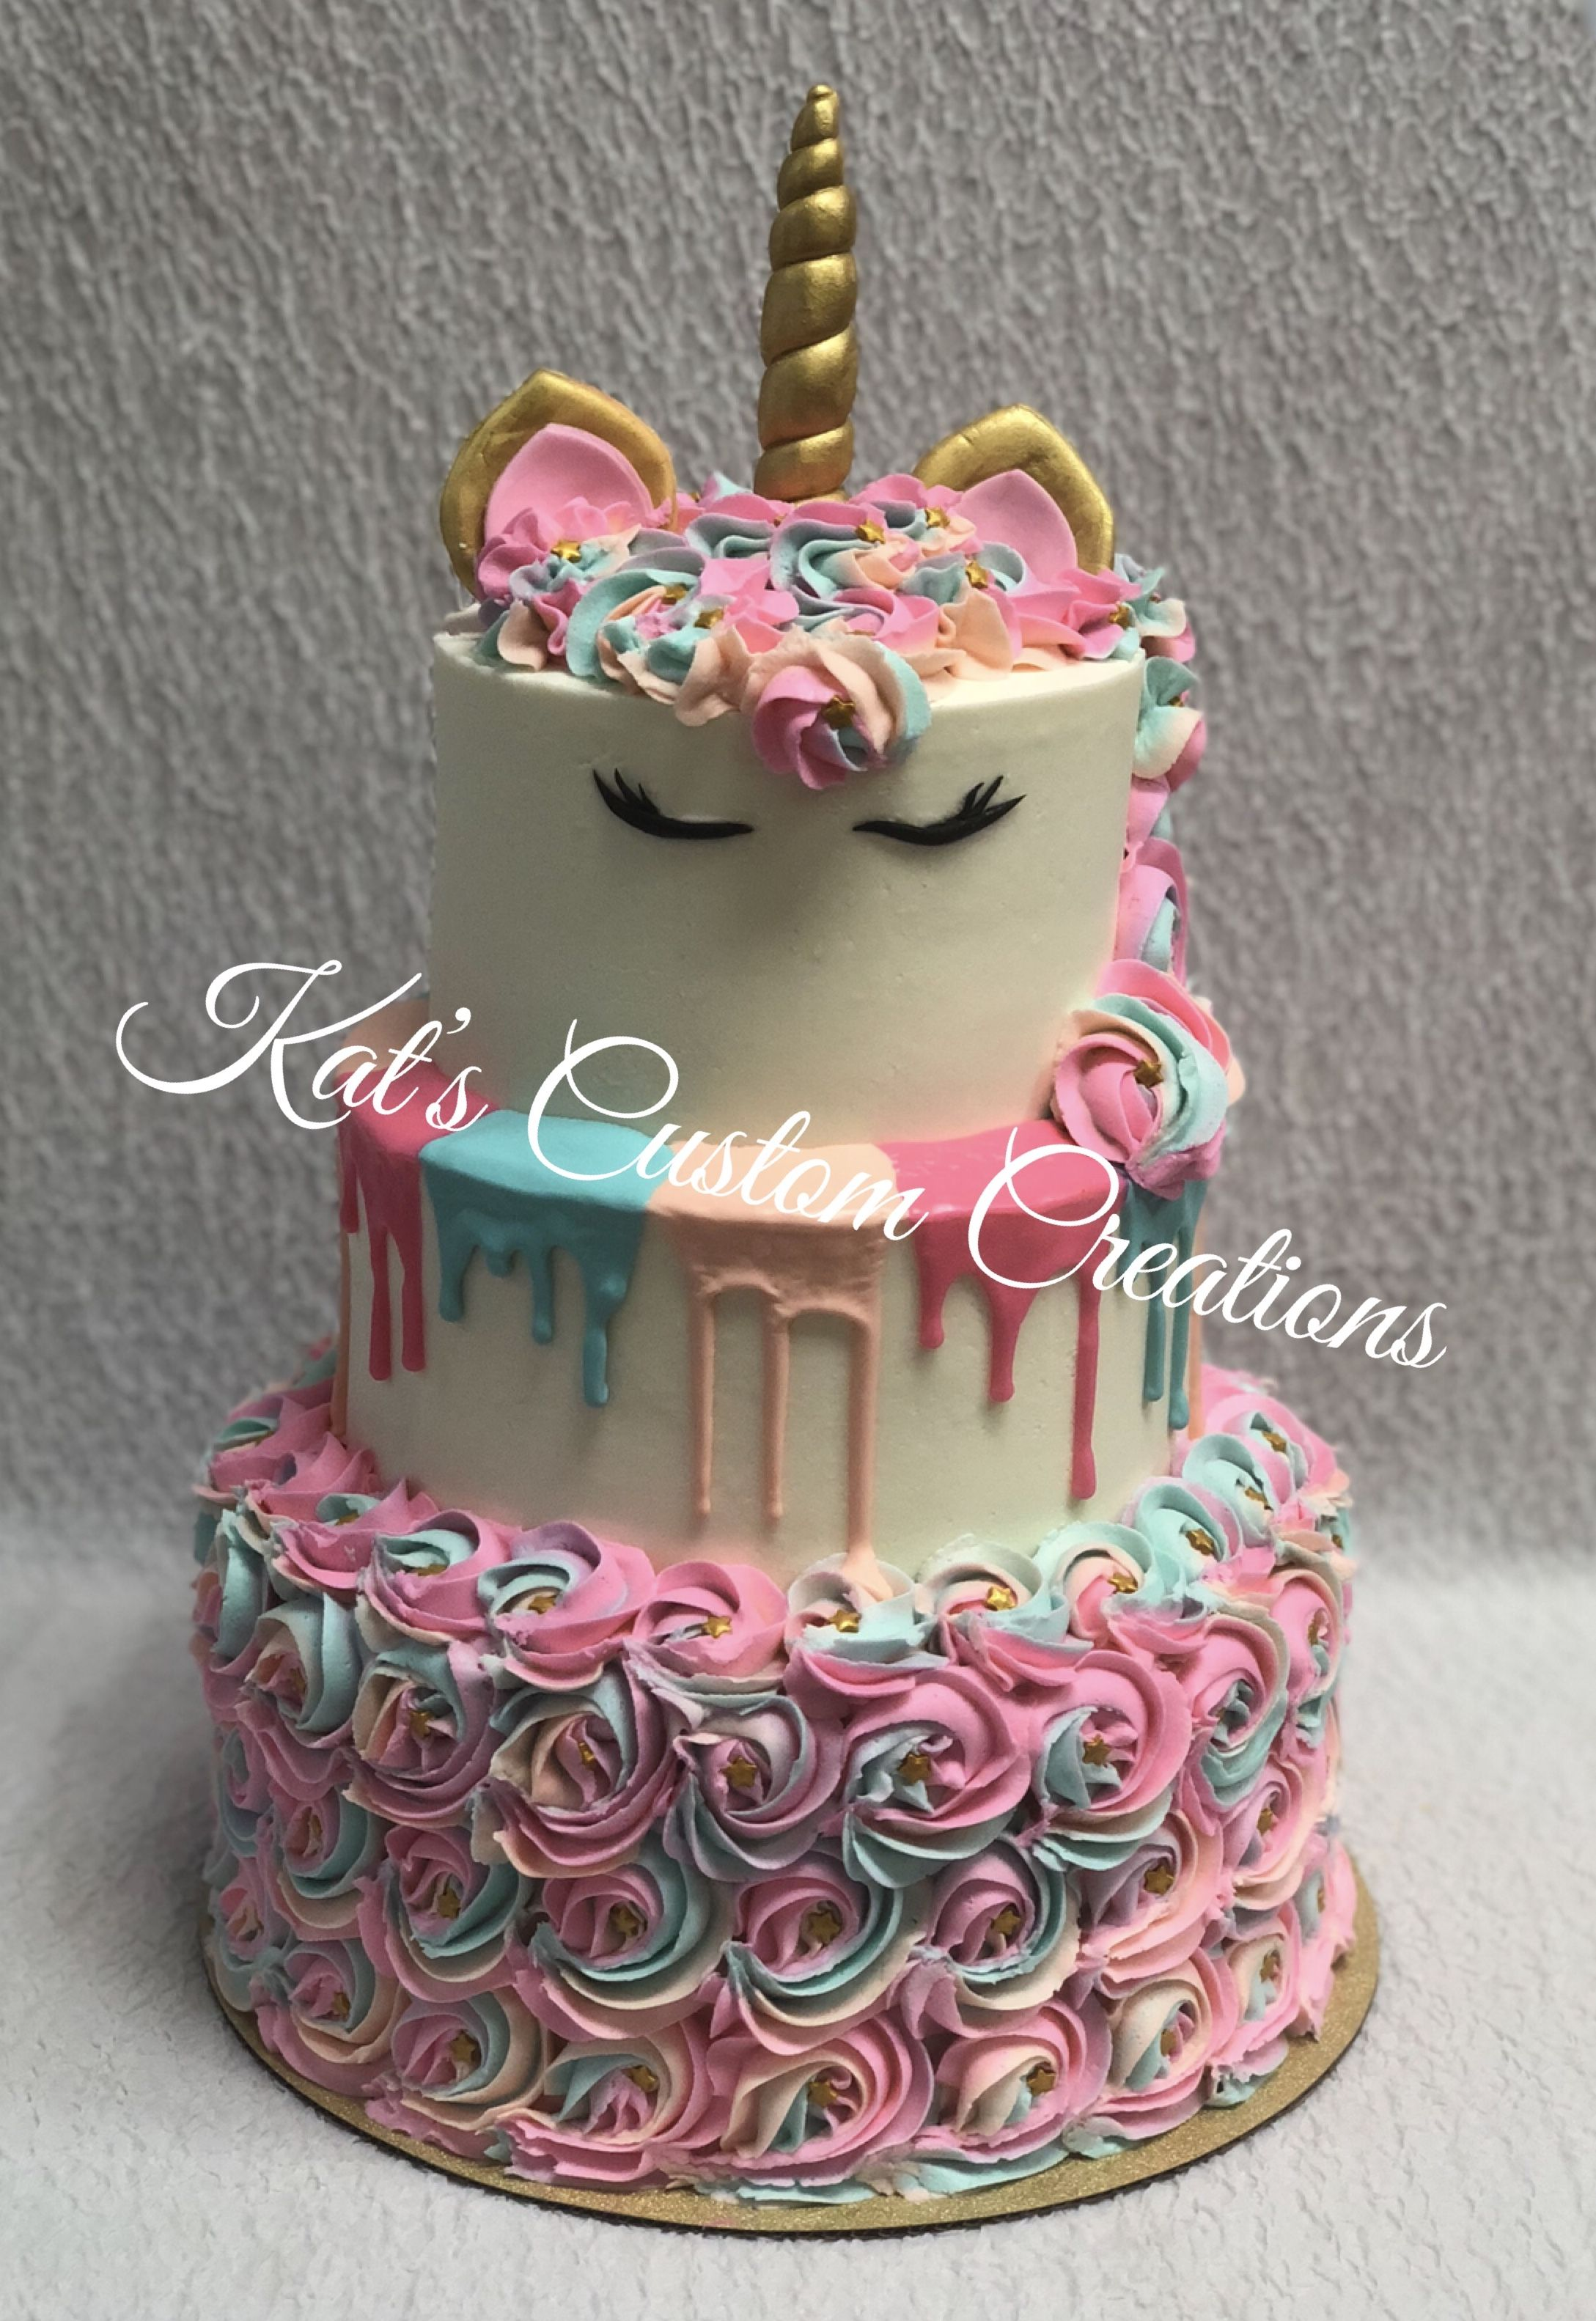 3 Tier Unicorn, Drip, and Rosette Cake!!!